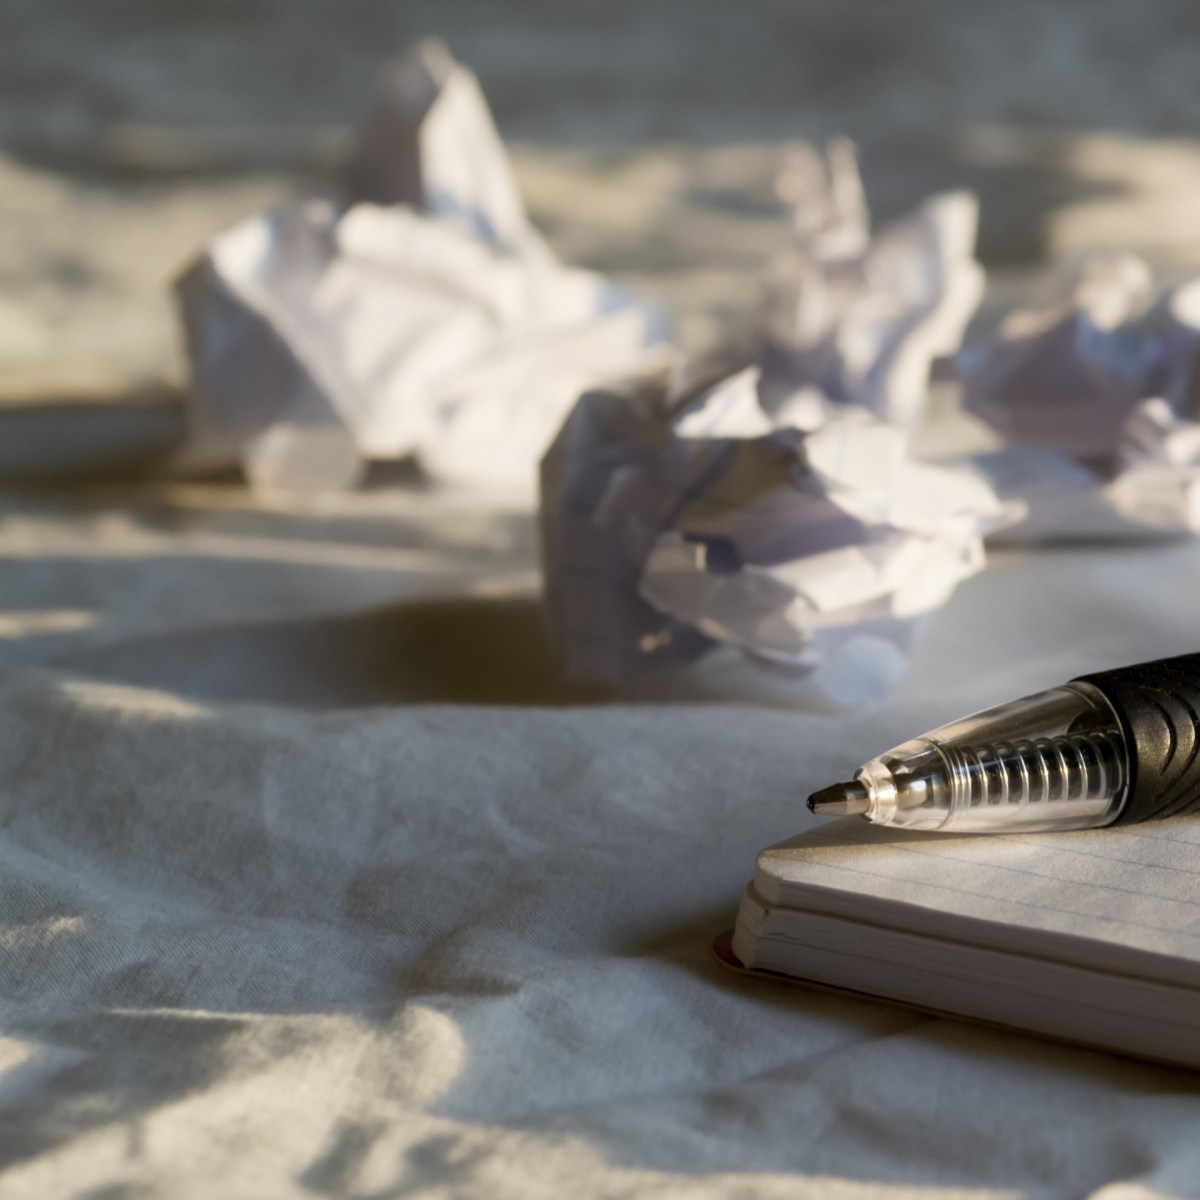 Writer's block – if it is real, can we combat it?